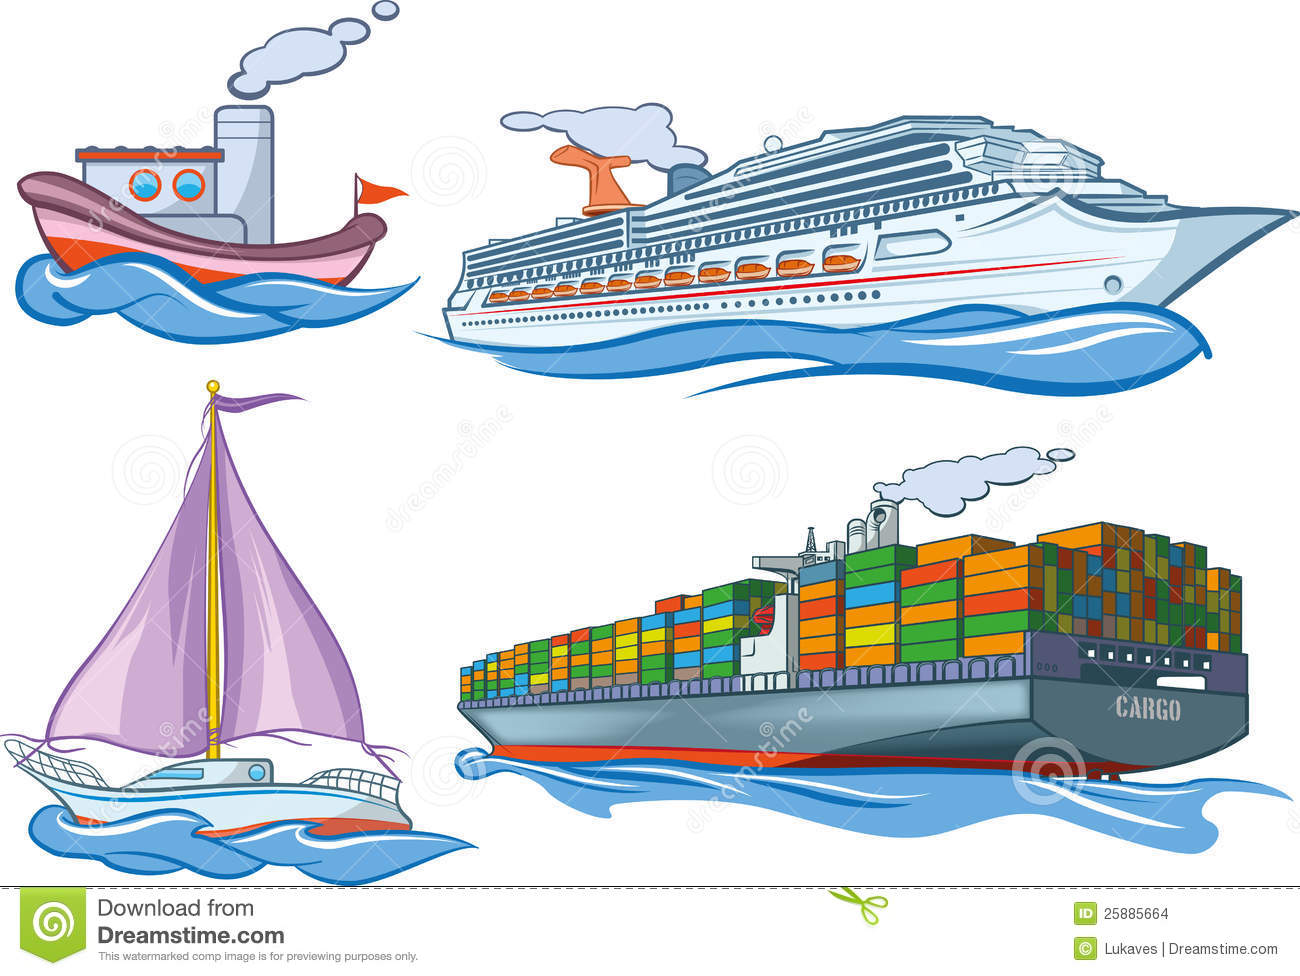 Means of rail transport clipart - Clipground